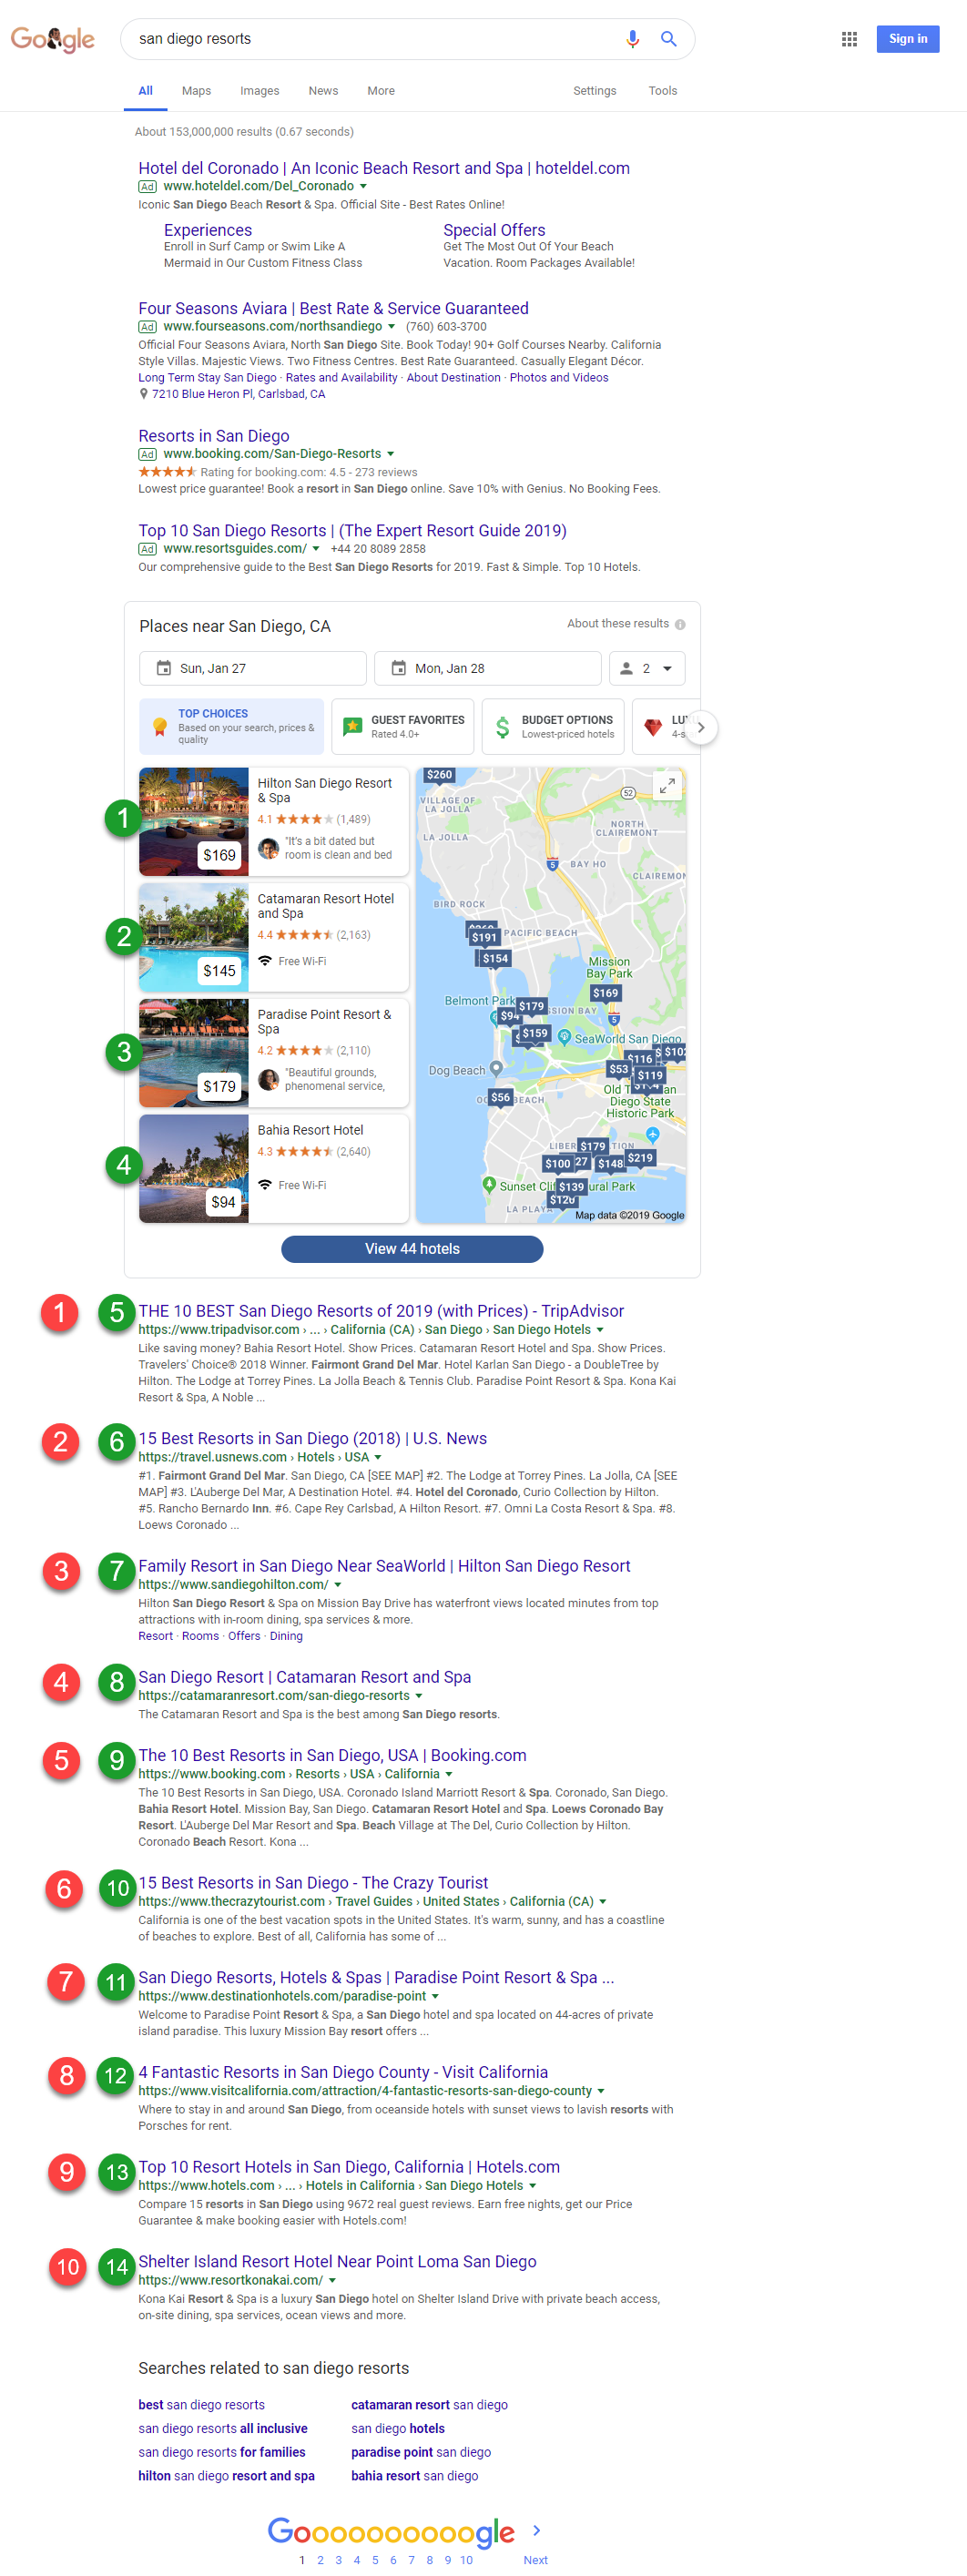 Google Hotel Pack Results included